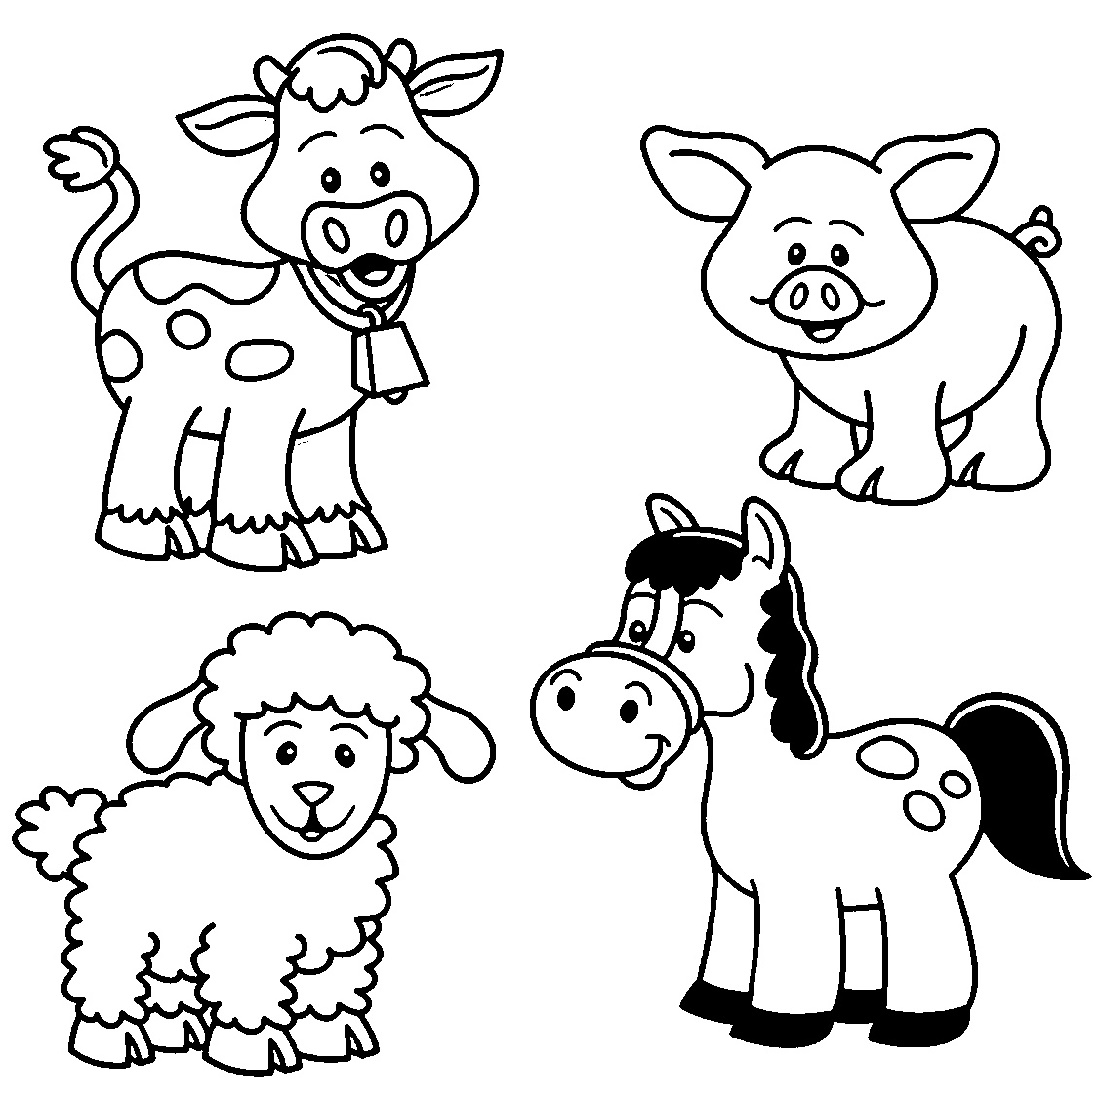 Farm-Animal-Coloring-Pages-Cartoon